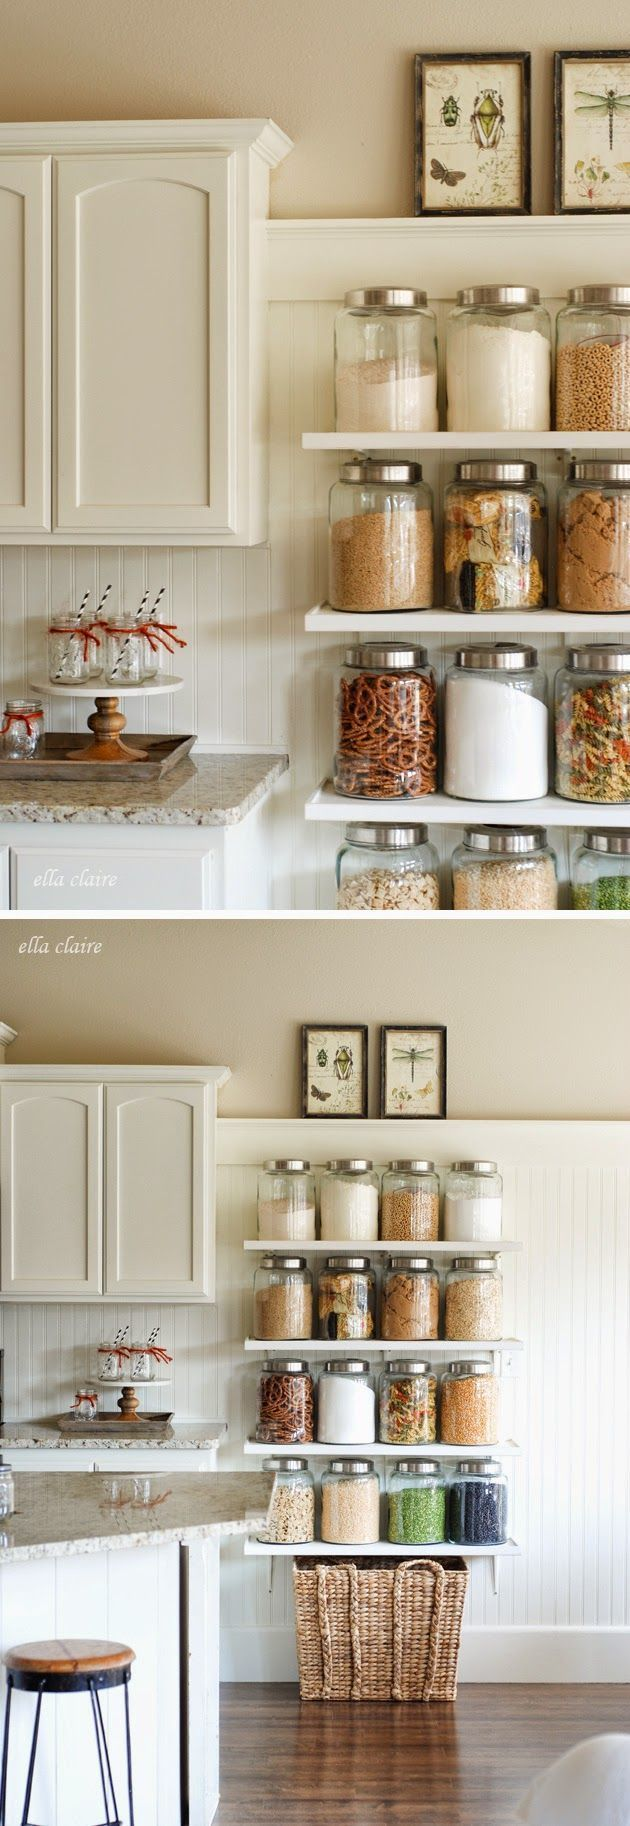 Easy and Smart Diy Kitchen Ideas in Bugget 4 – Diy Crafts You & Home Design   NEW Decorating Ideas - http://centophobe.com/easy-and-smart-diy-kitchen-ideas-in-bugget-4-diy-crafts-you-home-design-new-decorating-ideas/ -